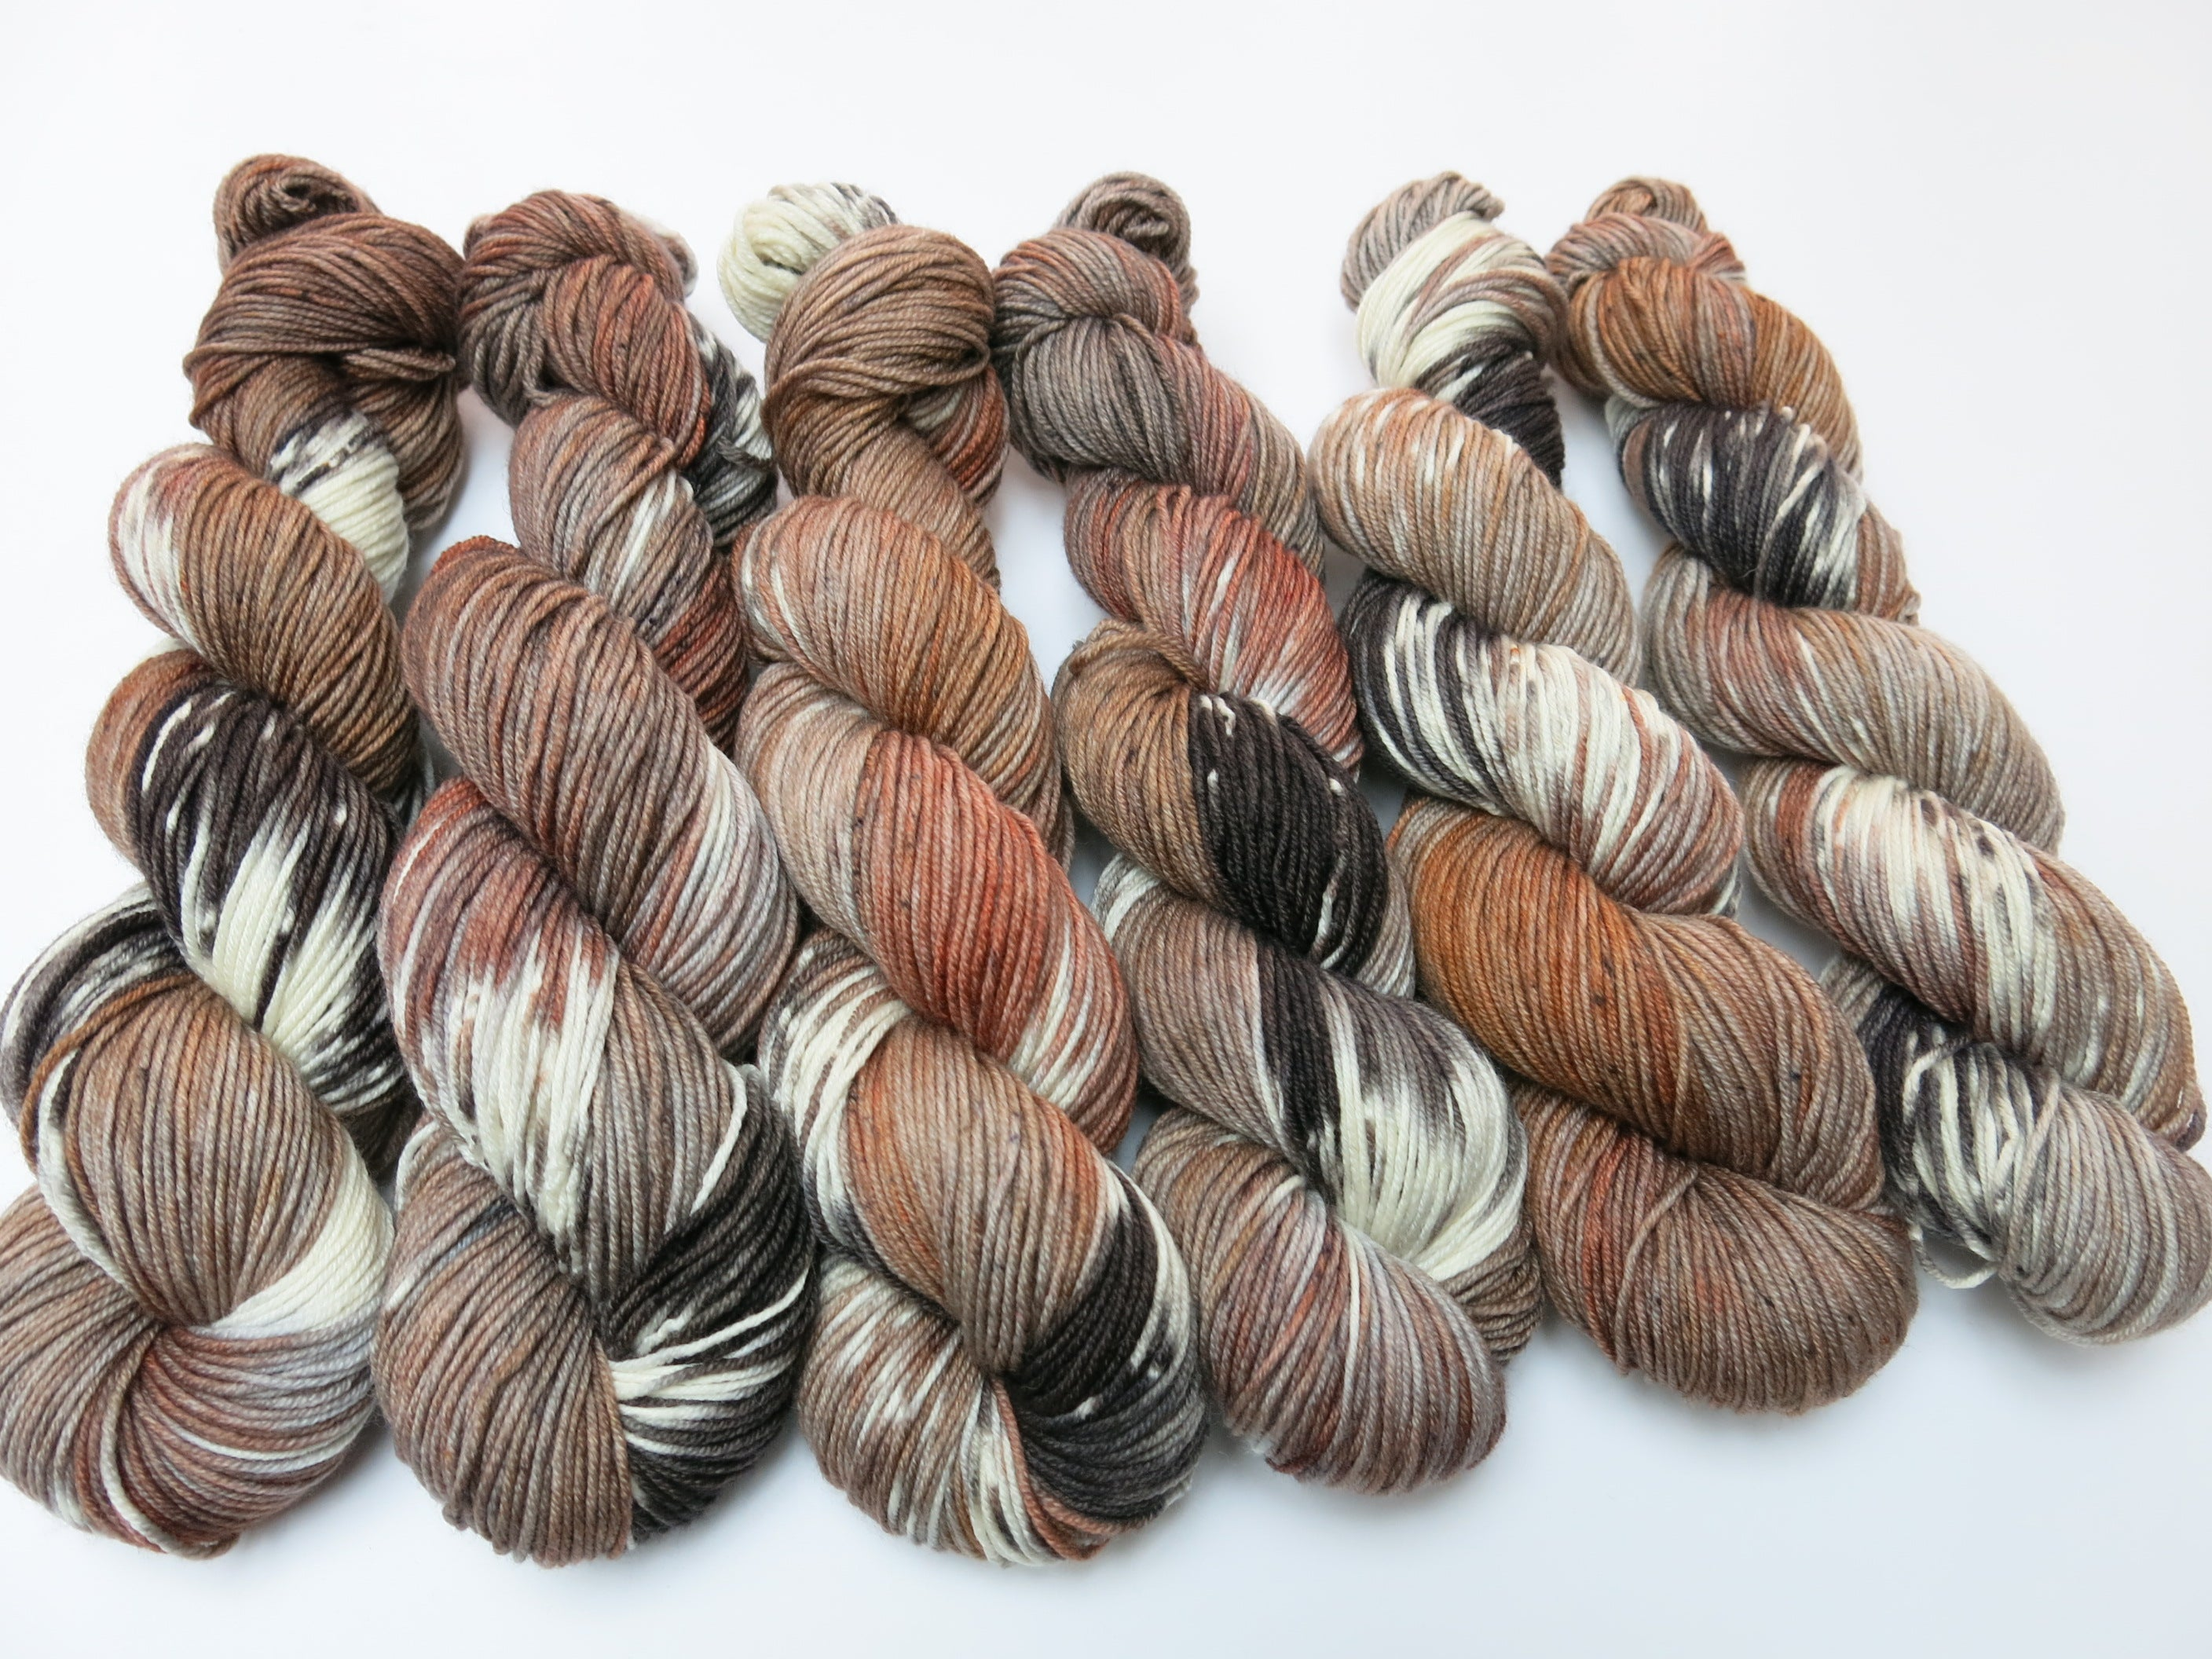 indie dyed brown and gray dk merino yarn